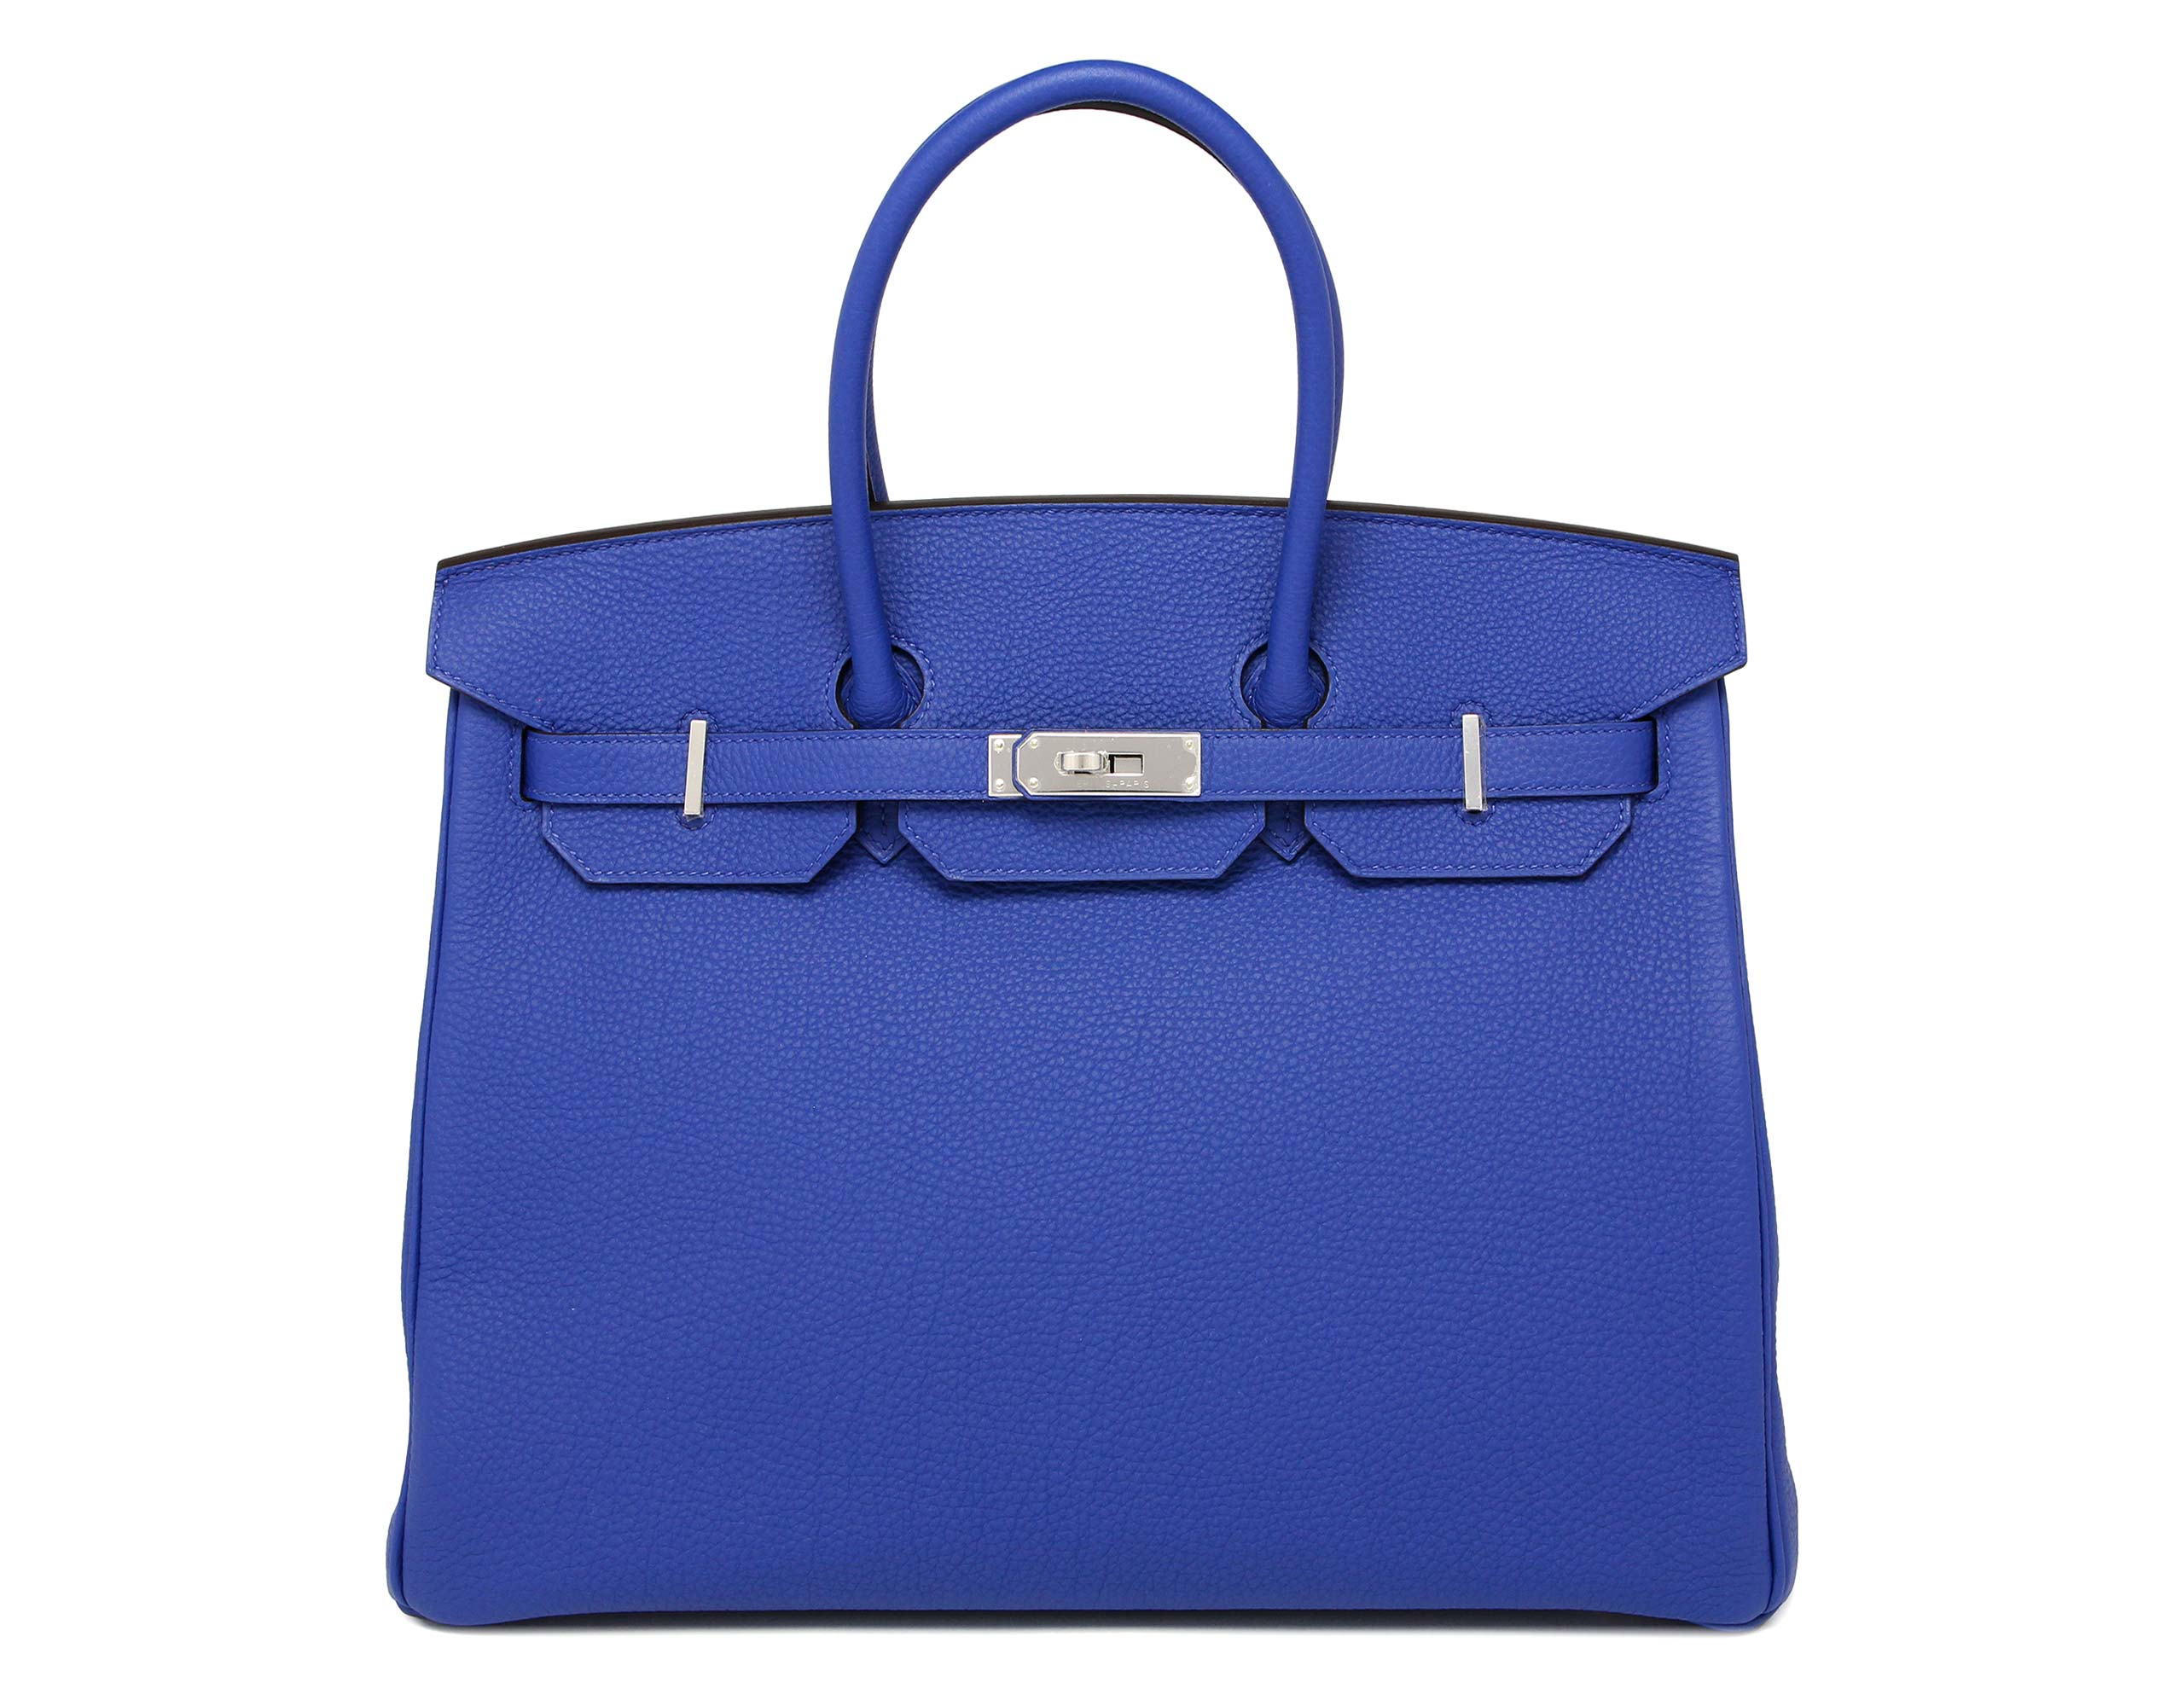 Hermes Birkin Electric Blue 35cm